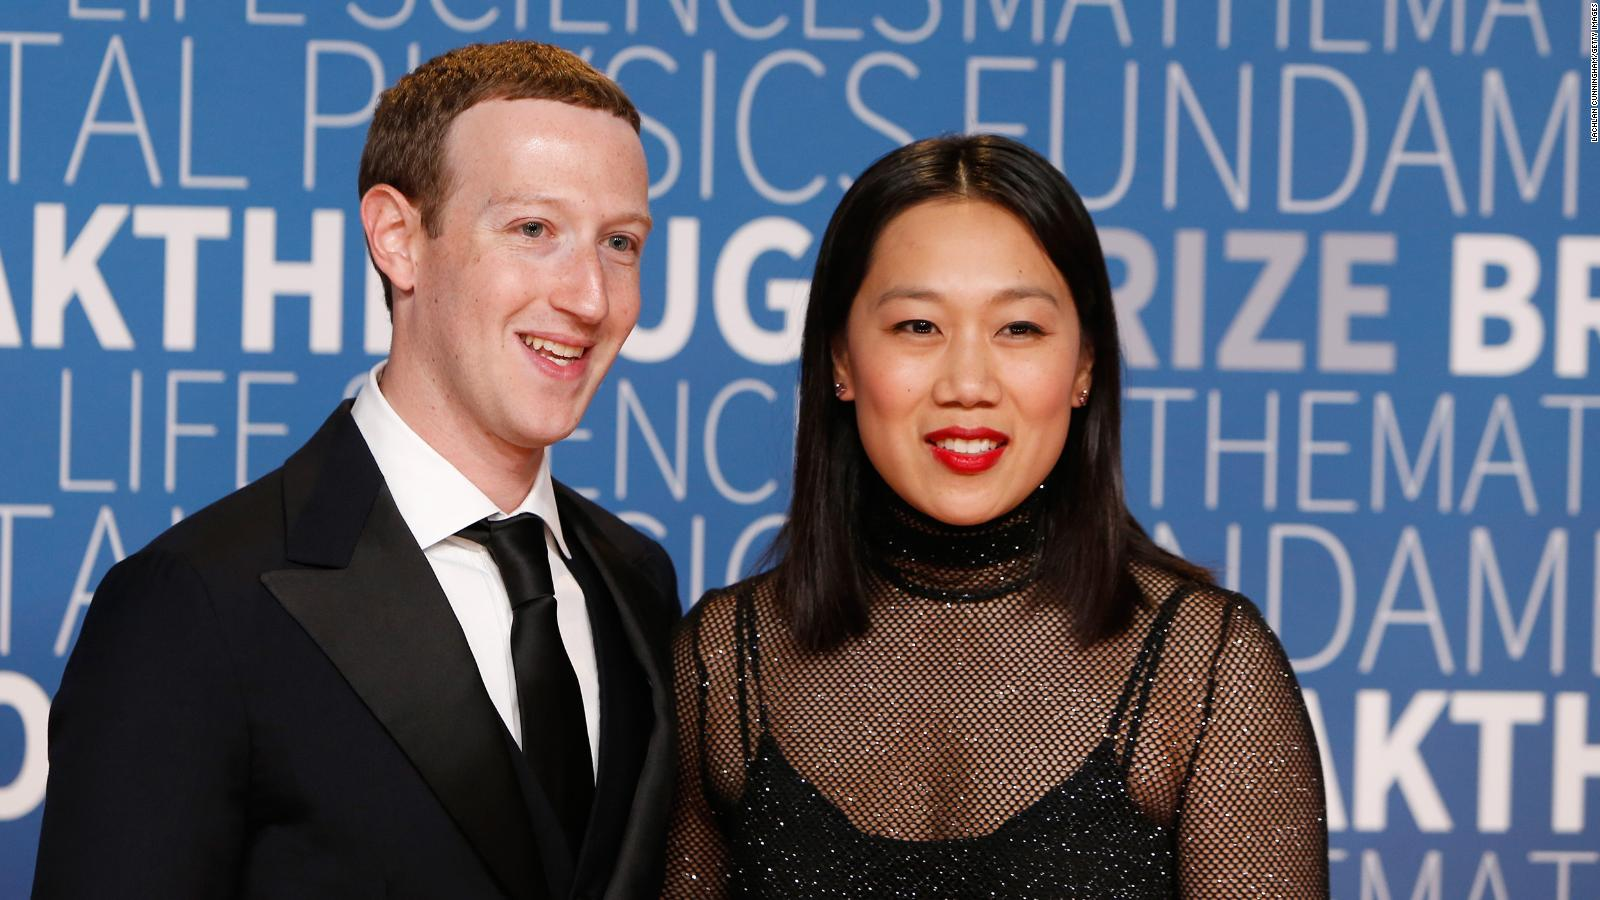 Facebook CEO Mark Zuckerberg used his engineering skills to build a